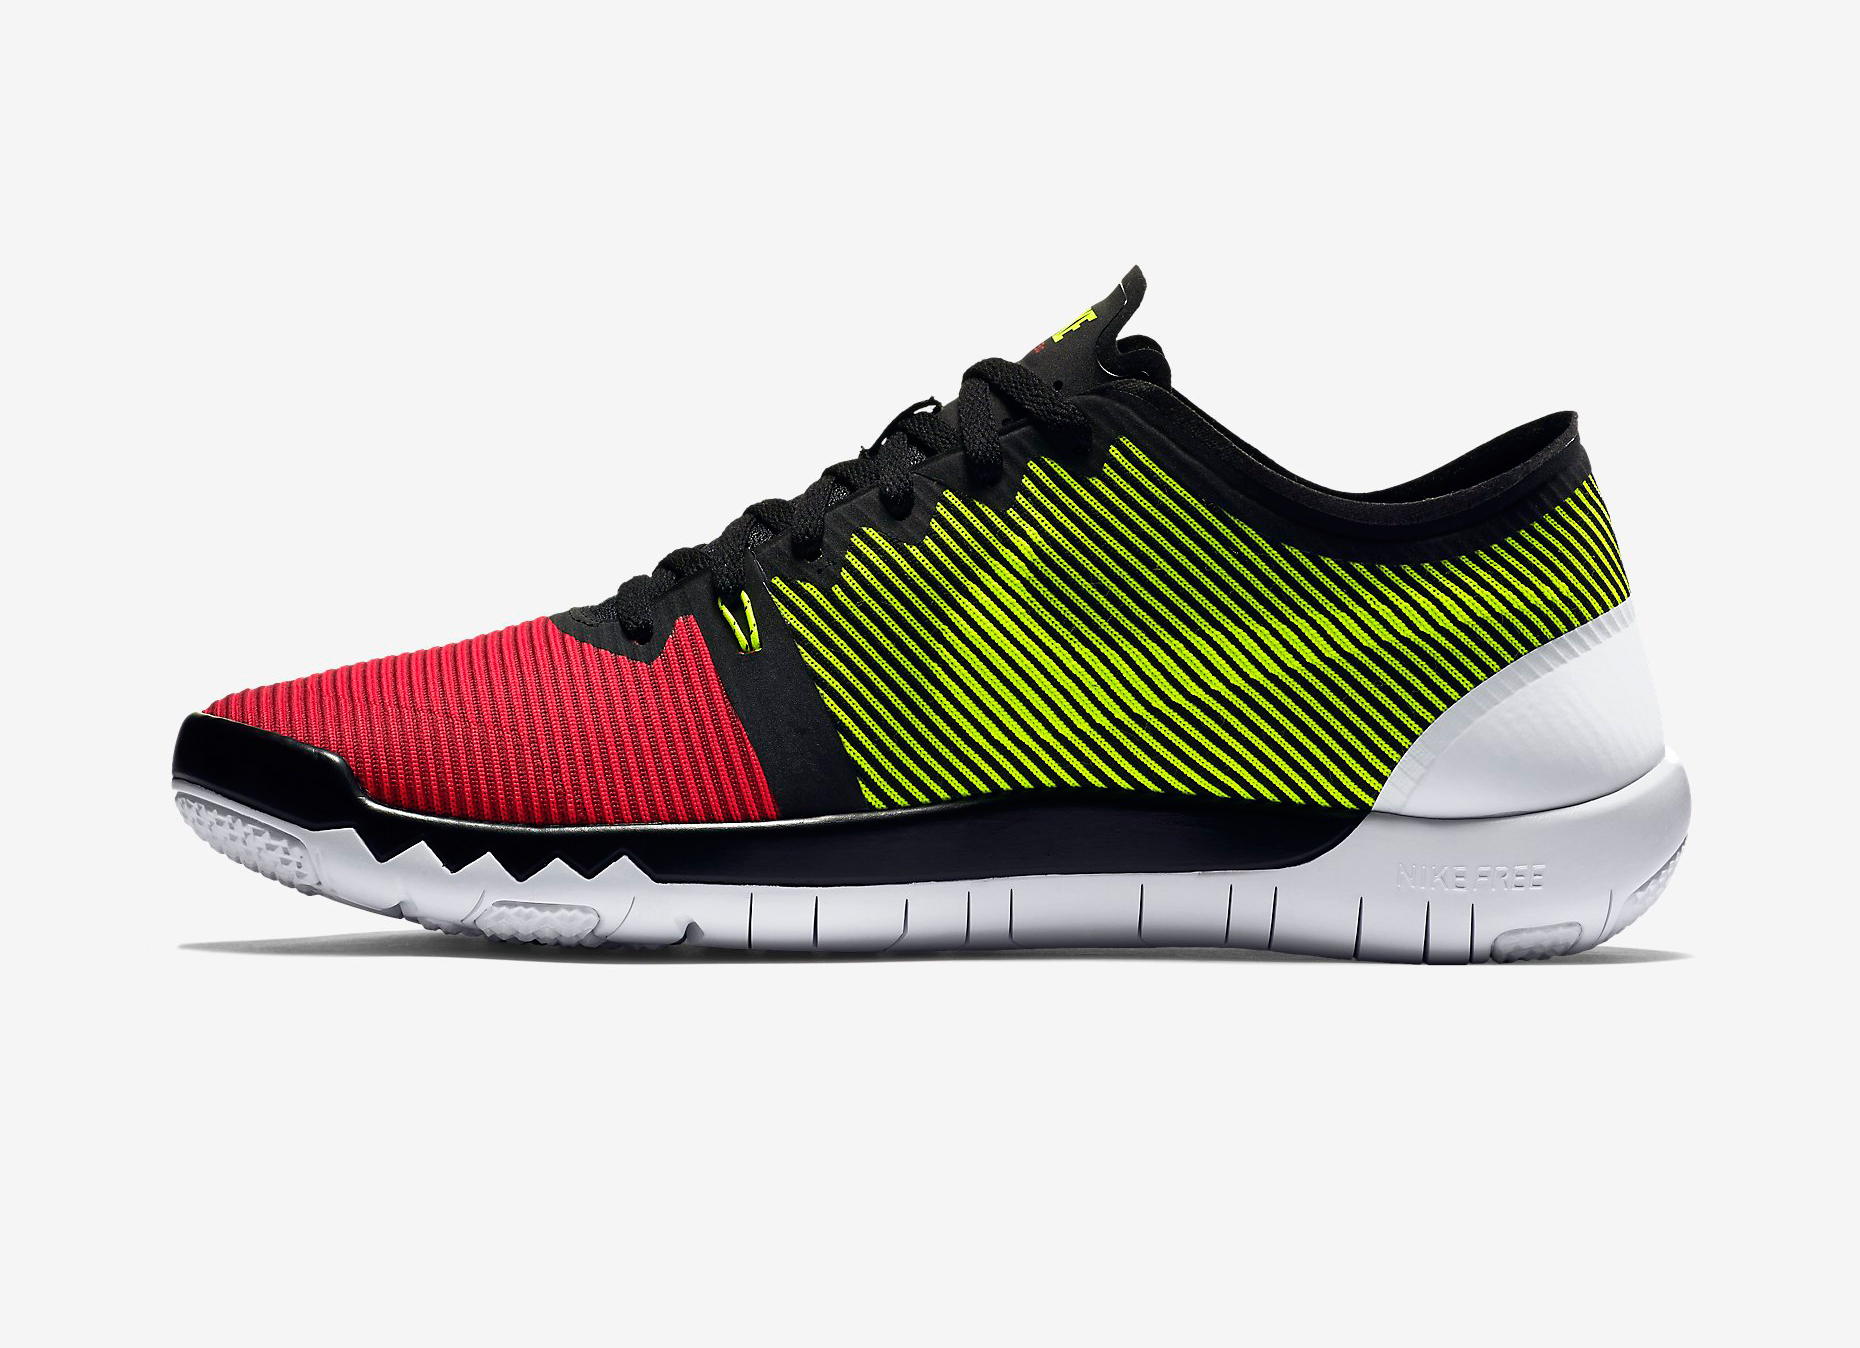 1f6d983be74eb The Nike Free Trainer 3.0 V4 Men s Training Shoe - Fashion Trendsetter